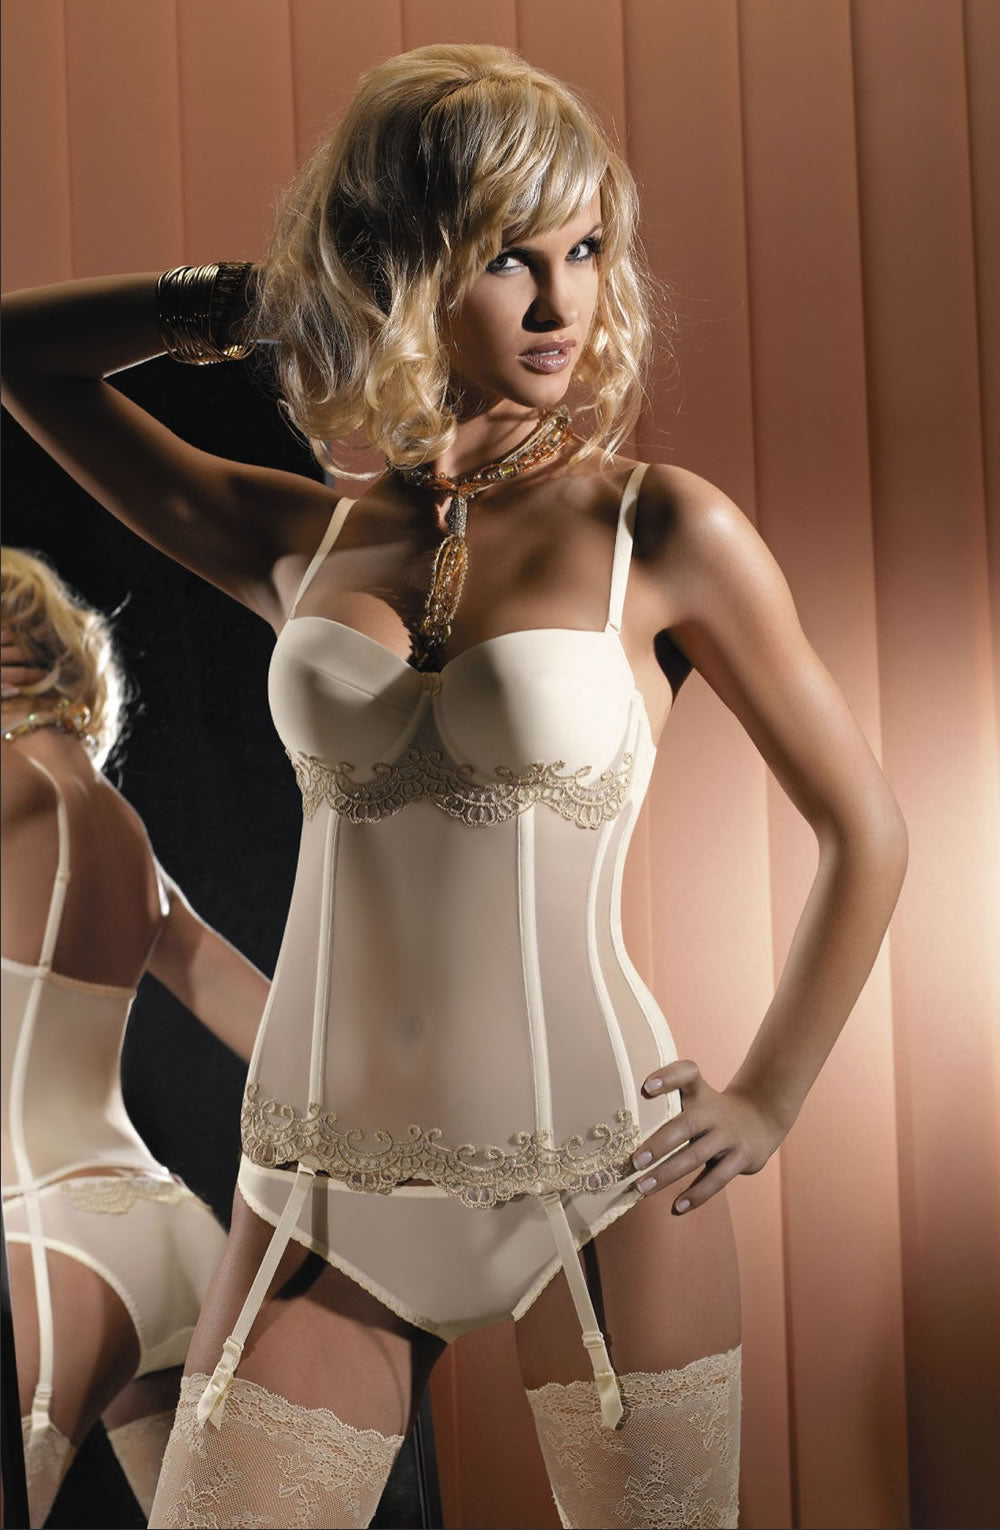 Gracya Wenecja Corset Crea  Corsets, Gracya, Honeymoon, Lingerie Sets, NEWLY-IMPORTED - So Luxe Lingerie